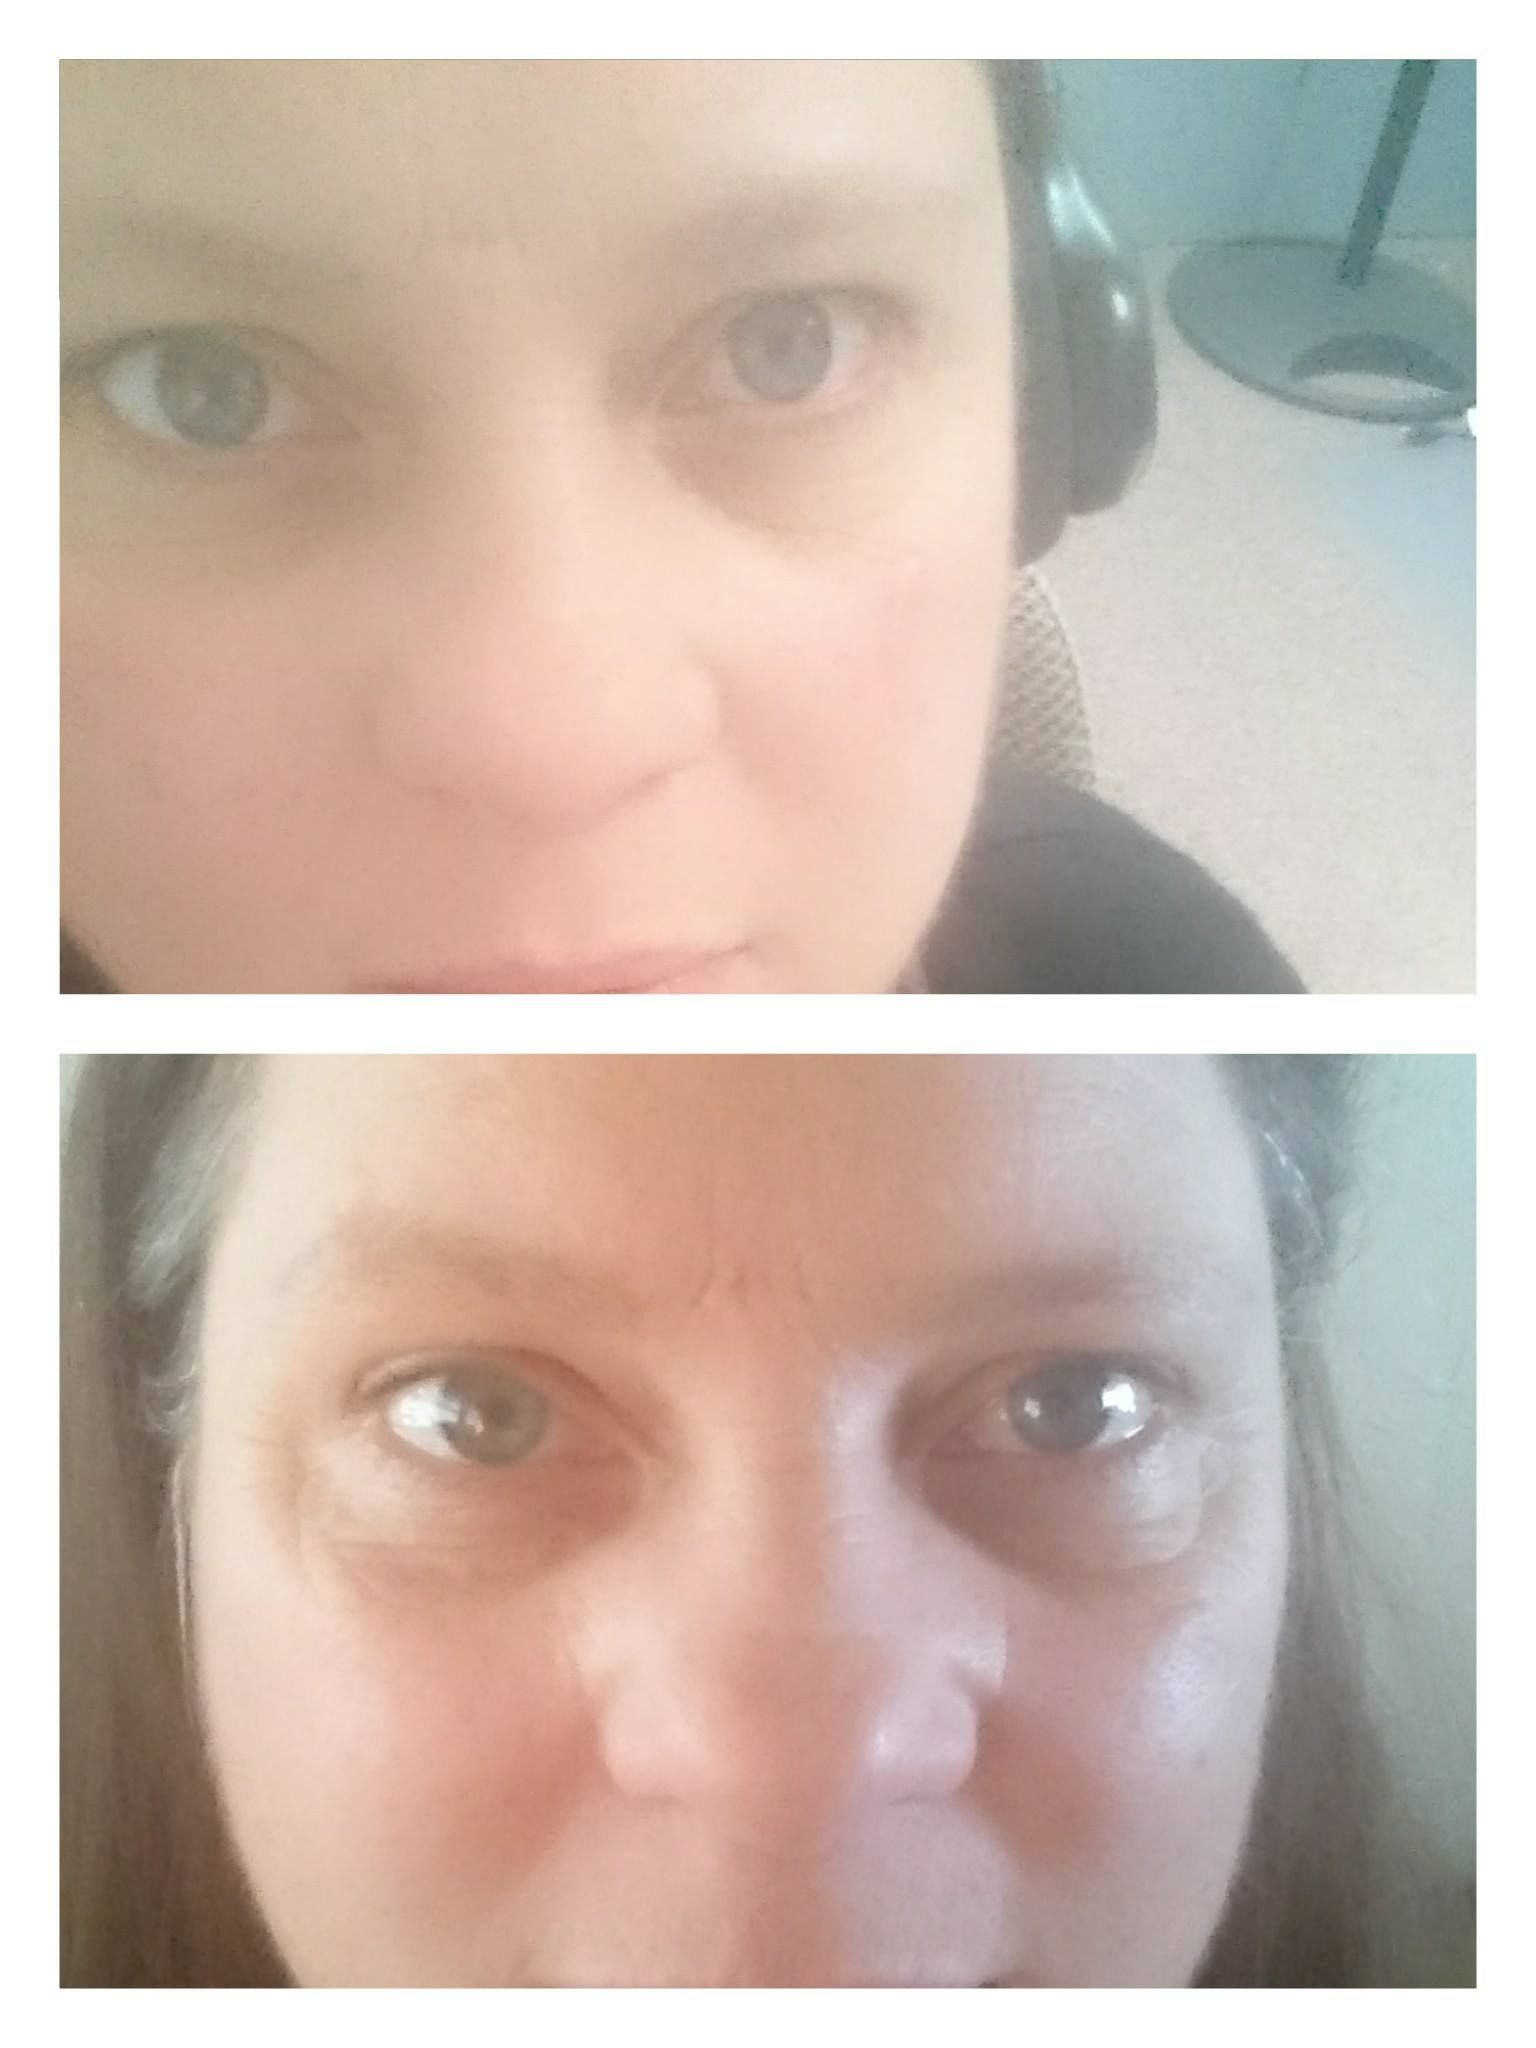 Eye and Lip Concentrate Serum after a few weeks. 27.50 a